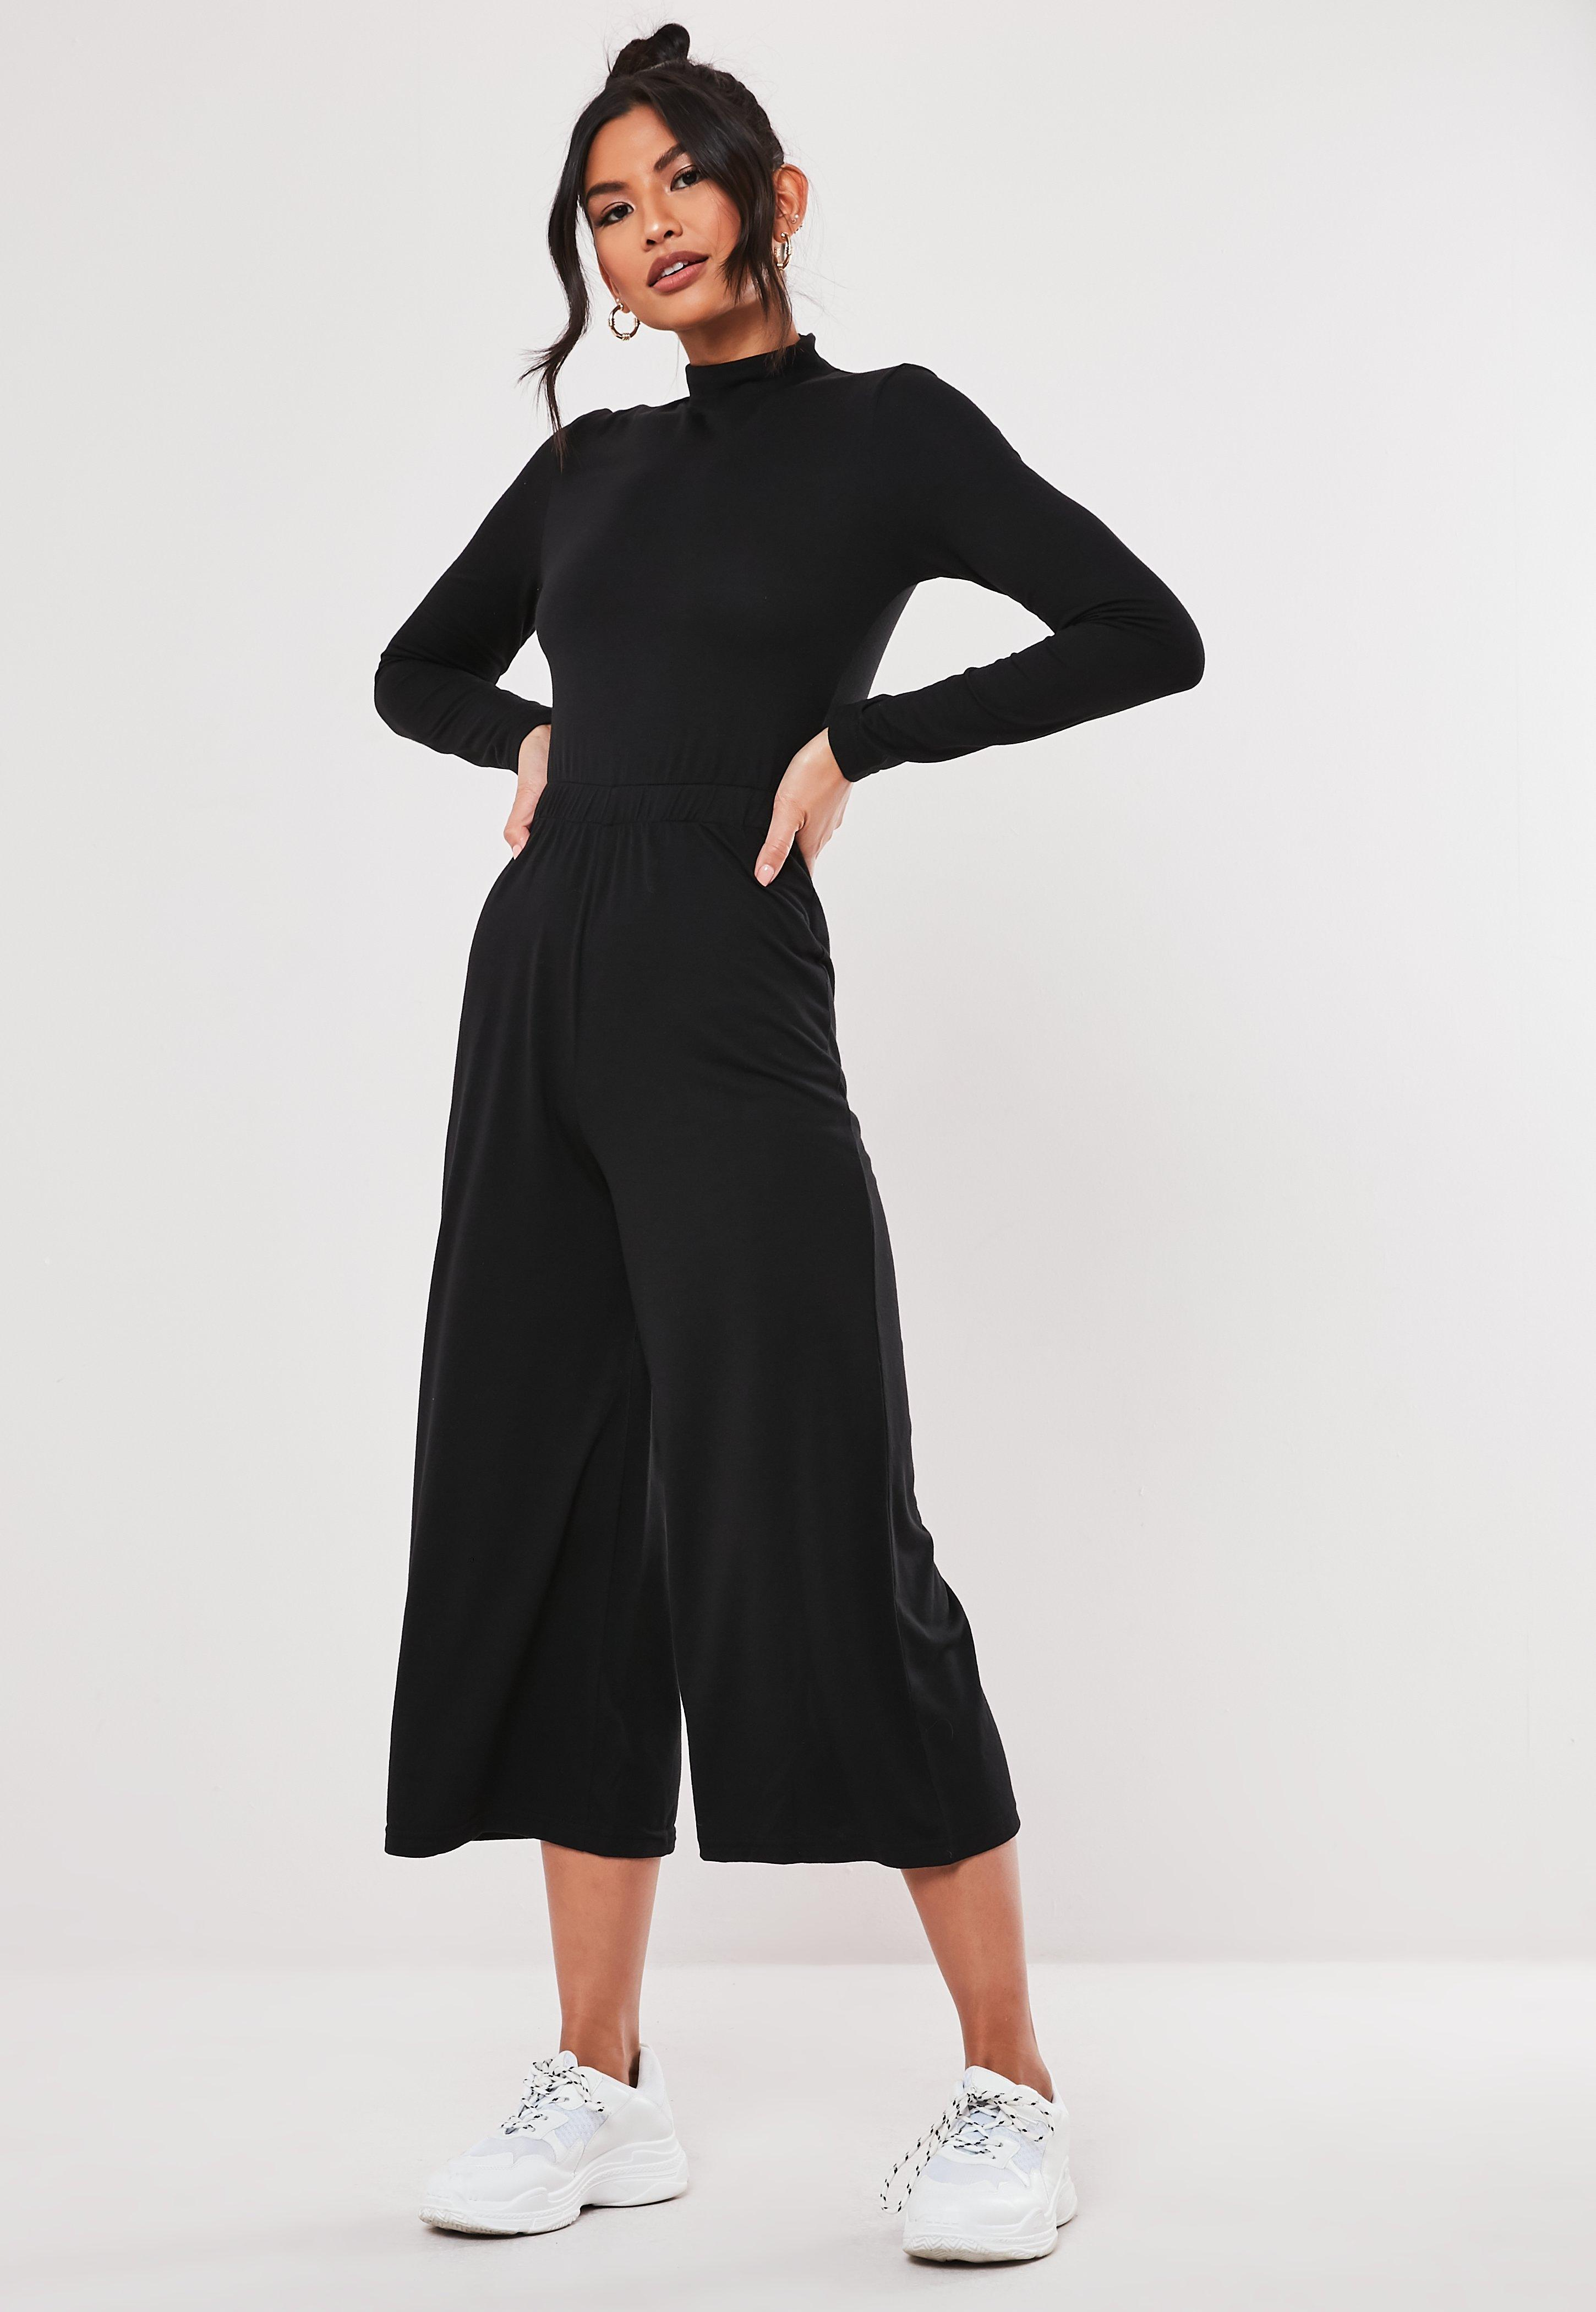 purchase authentic uk store low priced Black High Neck Tie Waist Culotte Jumpsuit